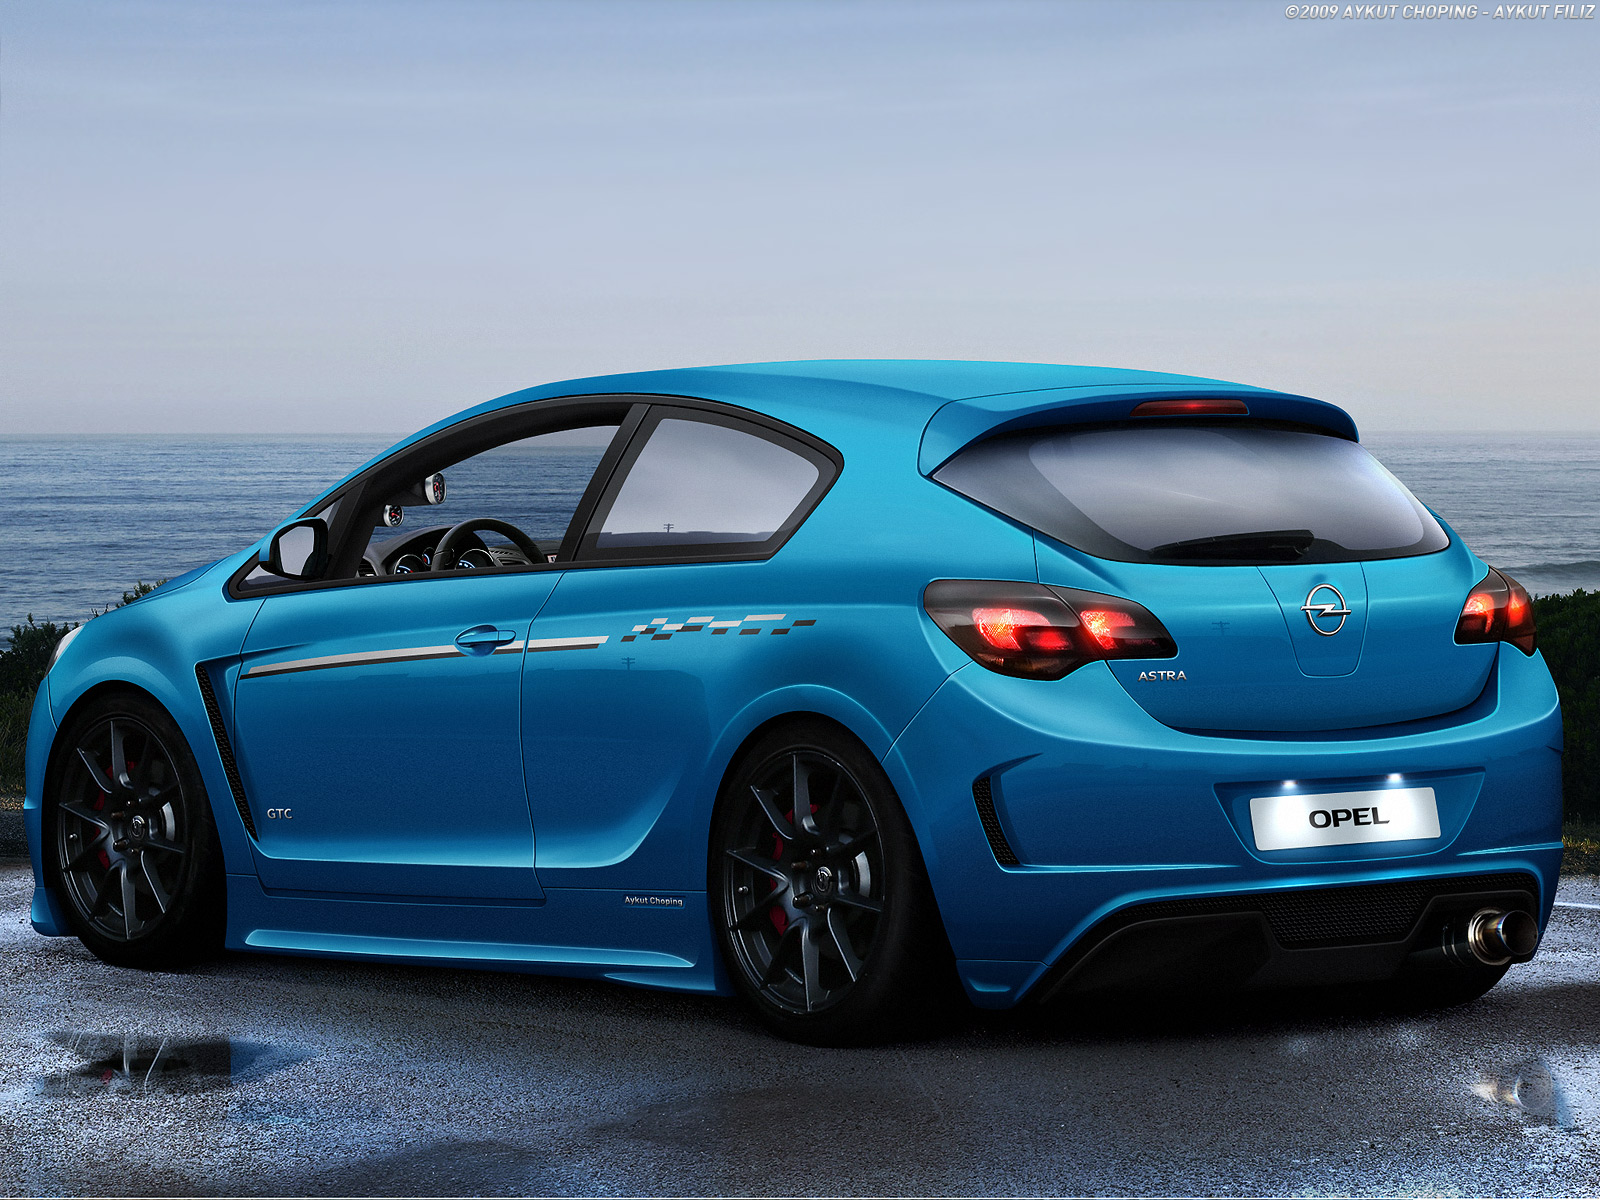 yeni opel astra modifiye design Wallpapers HD Wallpaper